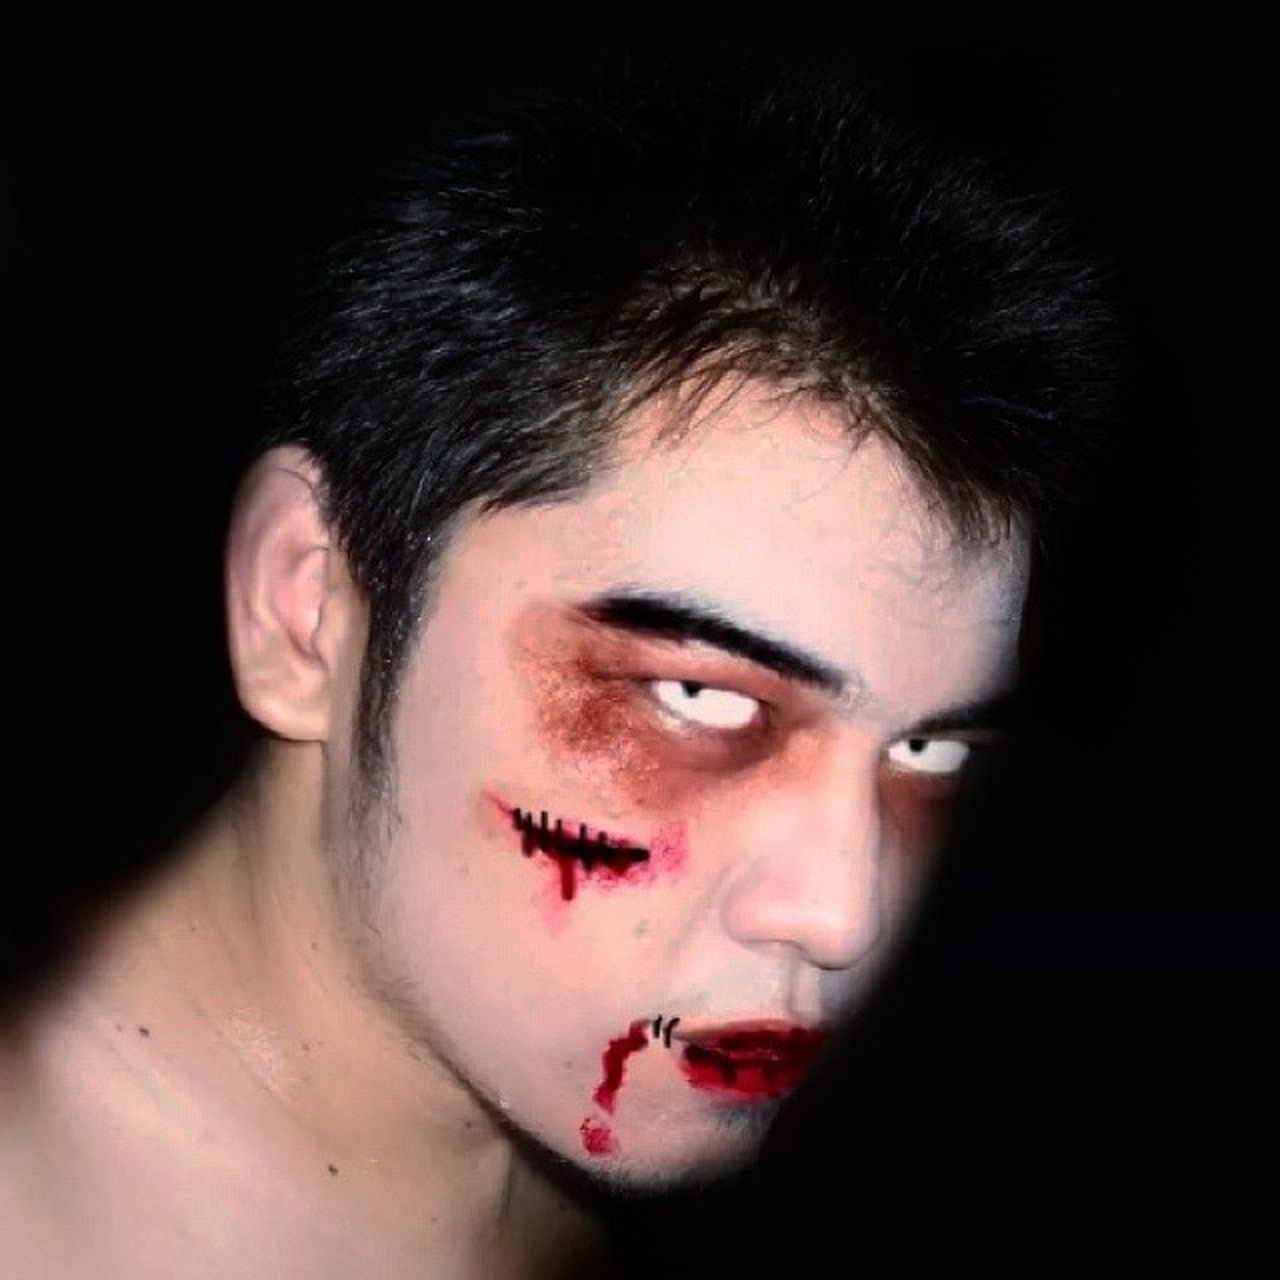 physical injury, blood, wound, human blood, beaten up, black background, red, studio shot, make-up, pain, one man only, people, adult, portrait, adults only, human body part, only men, one person, looking at camera, human face, close-up, one young man only, young adult